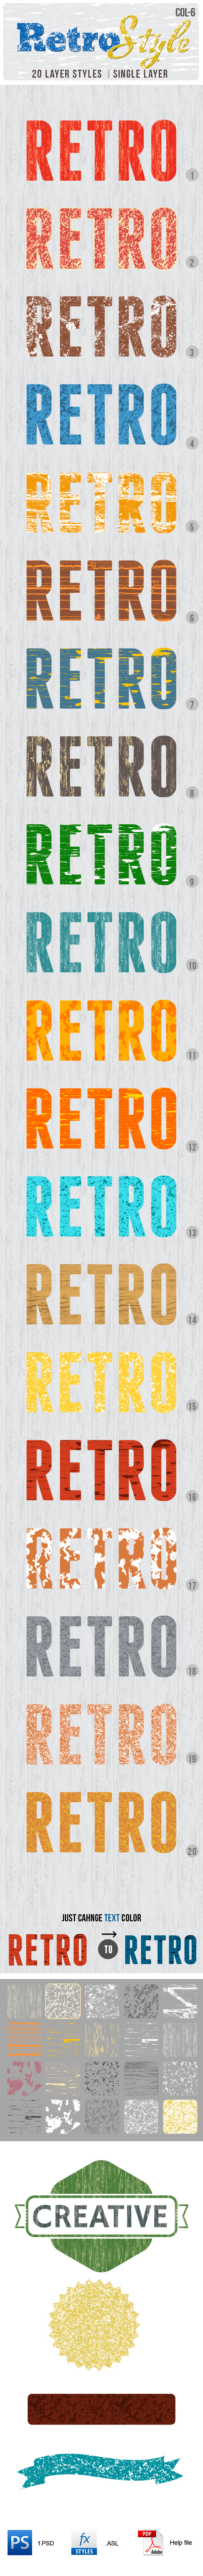 Retro Layer Styles - Text Effects Actions